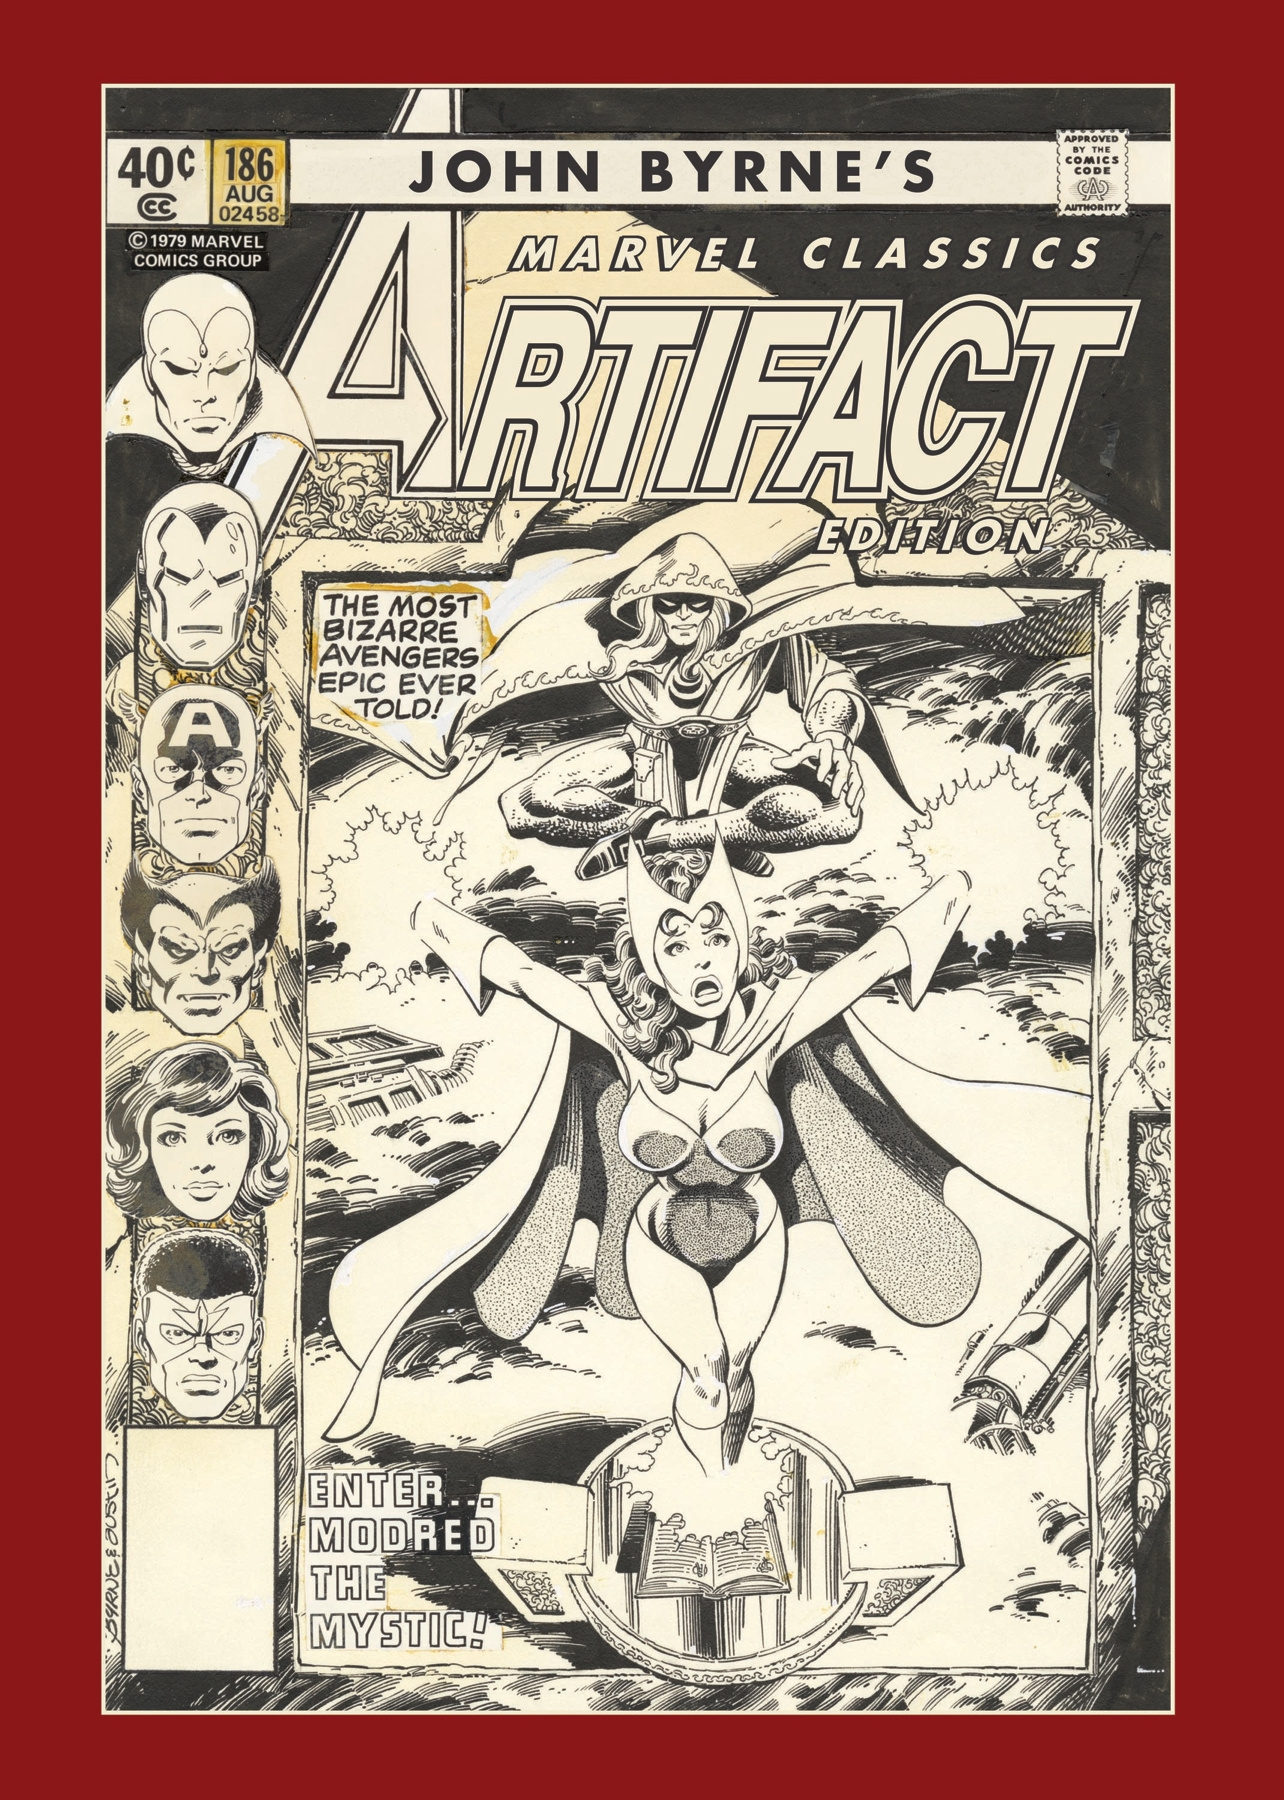 Out today: John Byrne's Marvel Classics Artifact Edition 1